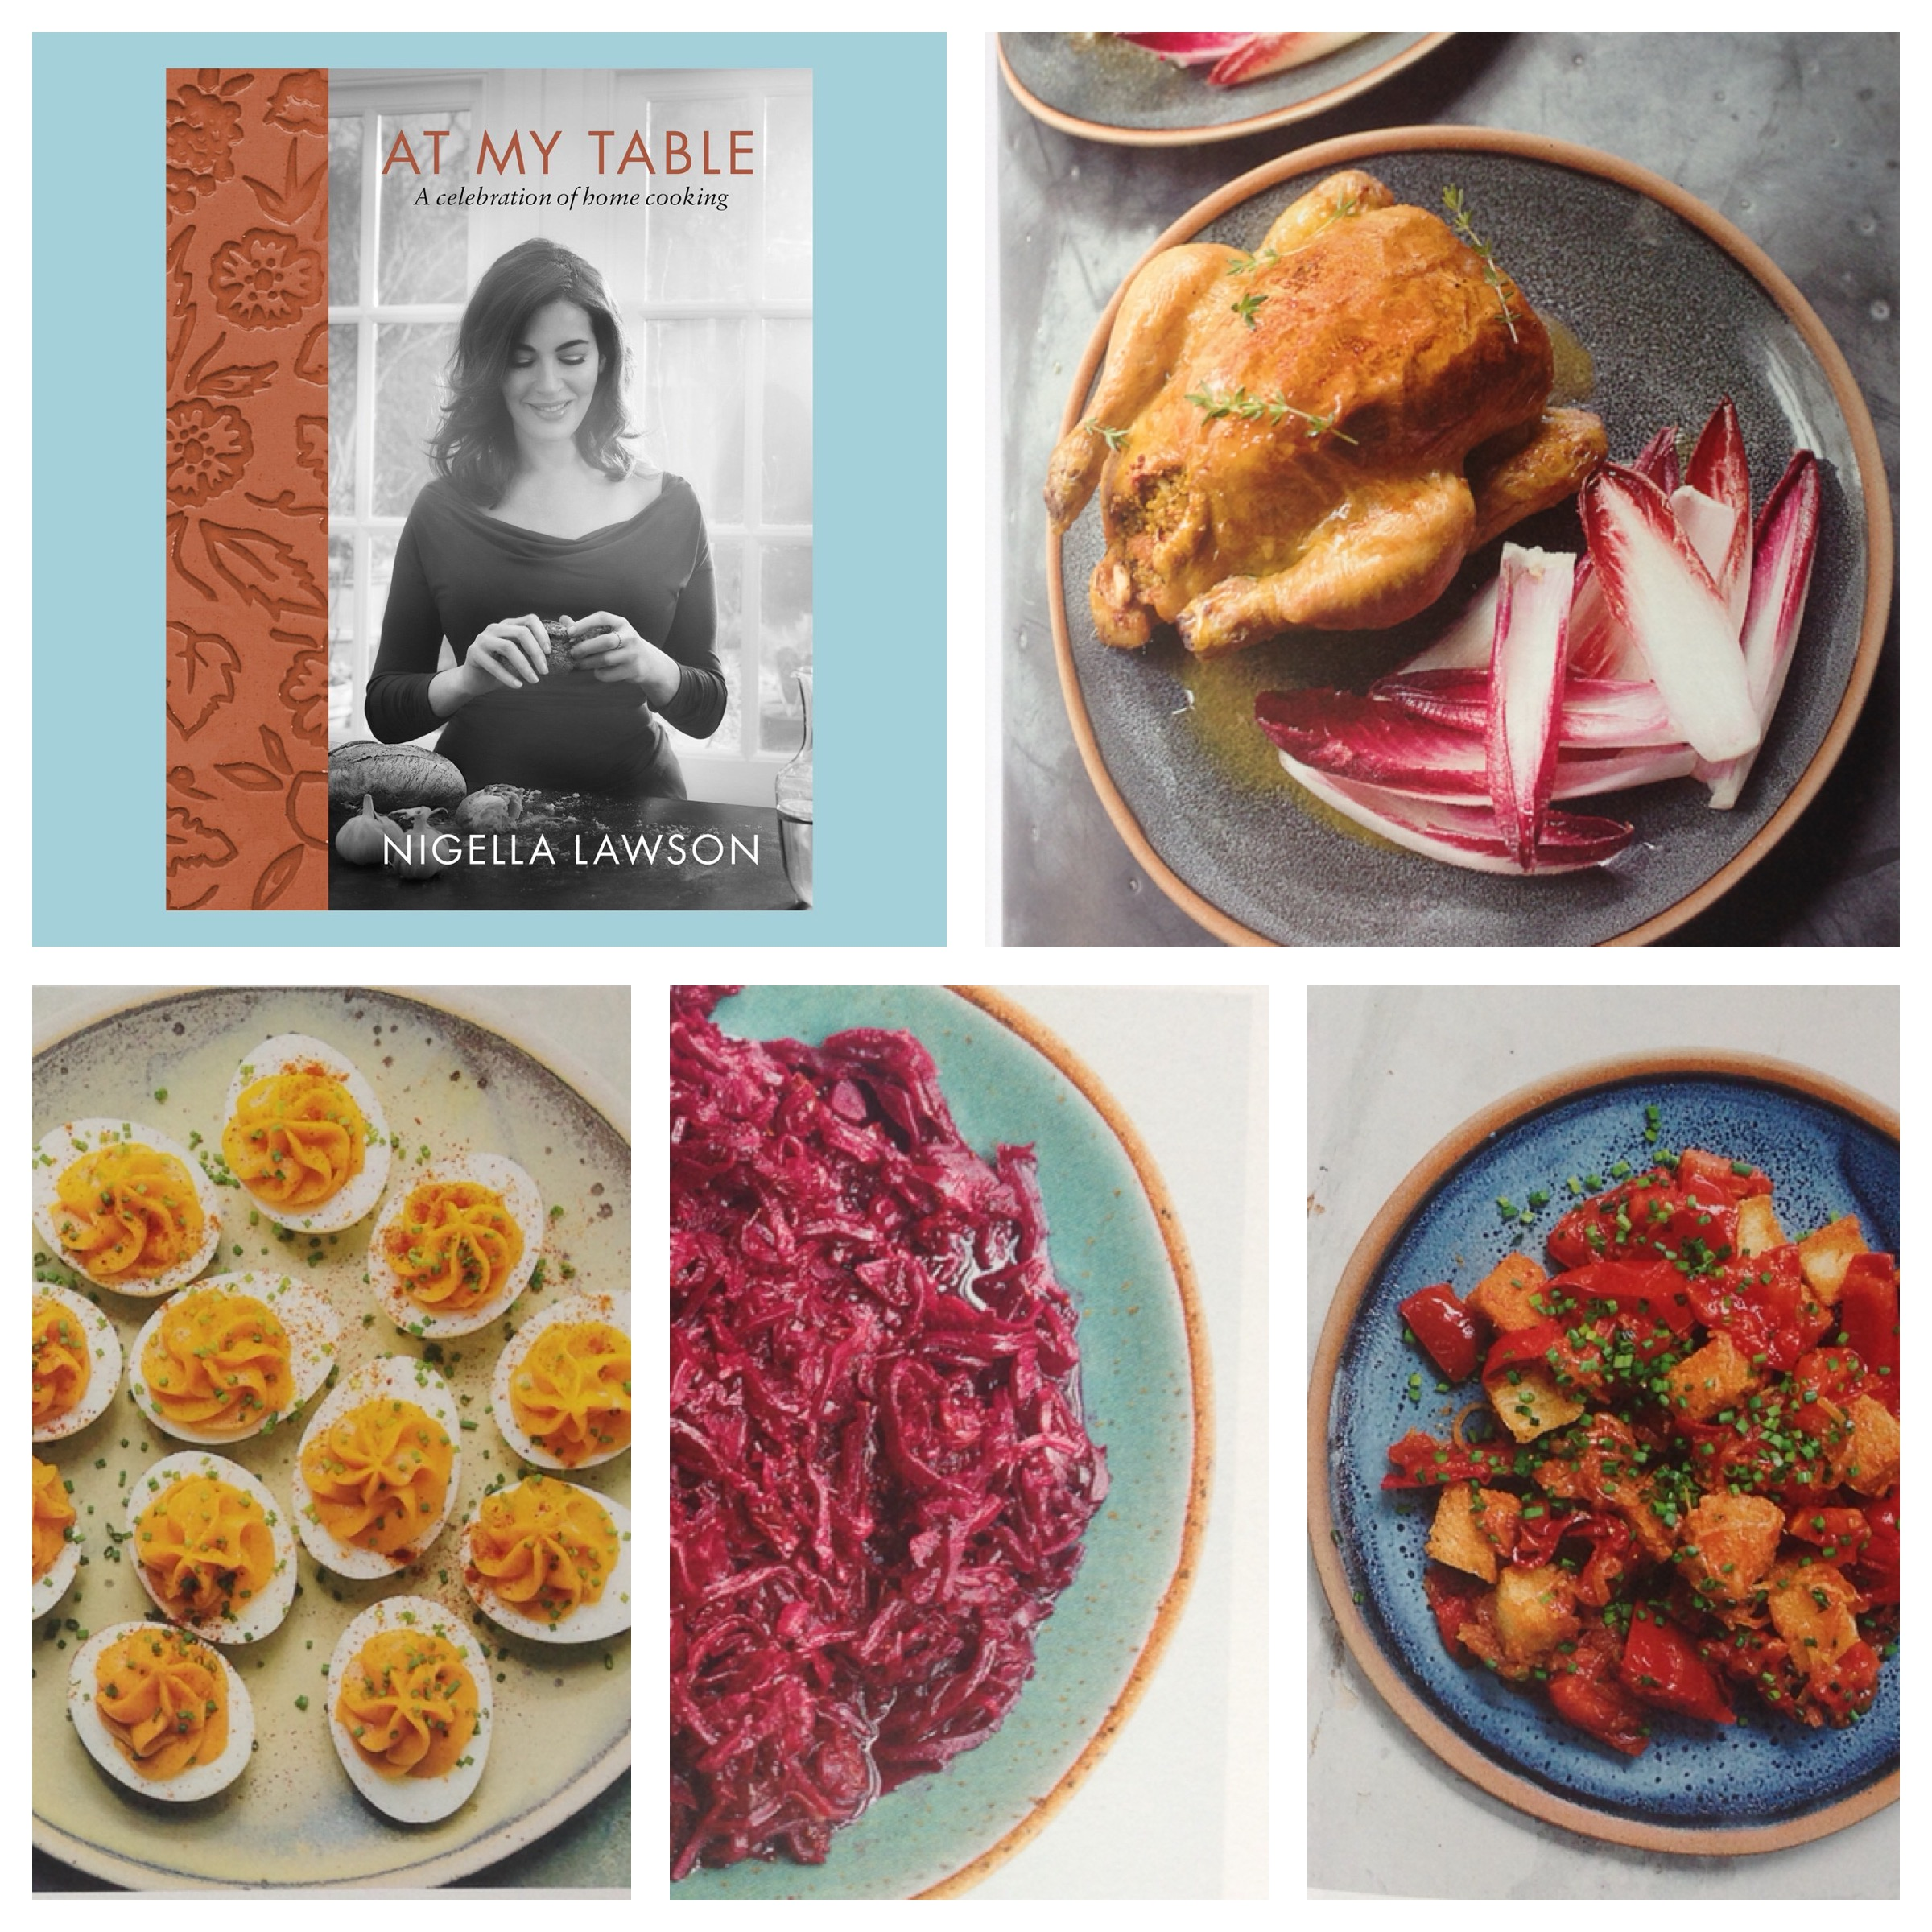 Nigella Lawson - SkandiHus Wares featured in Nigella Lawson's latest cookbook and TV show